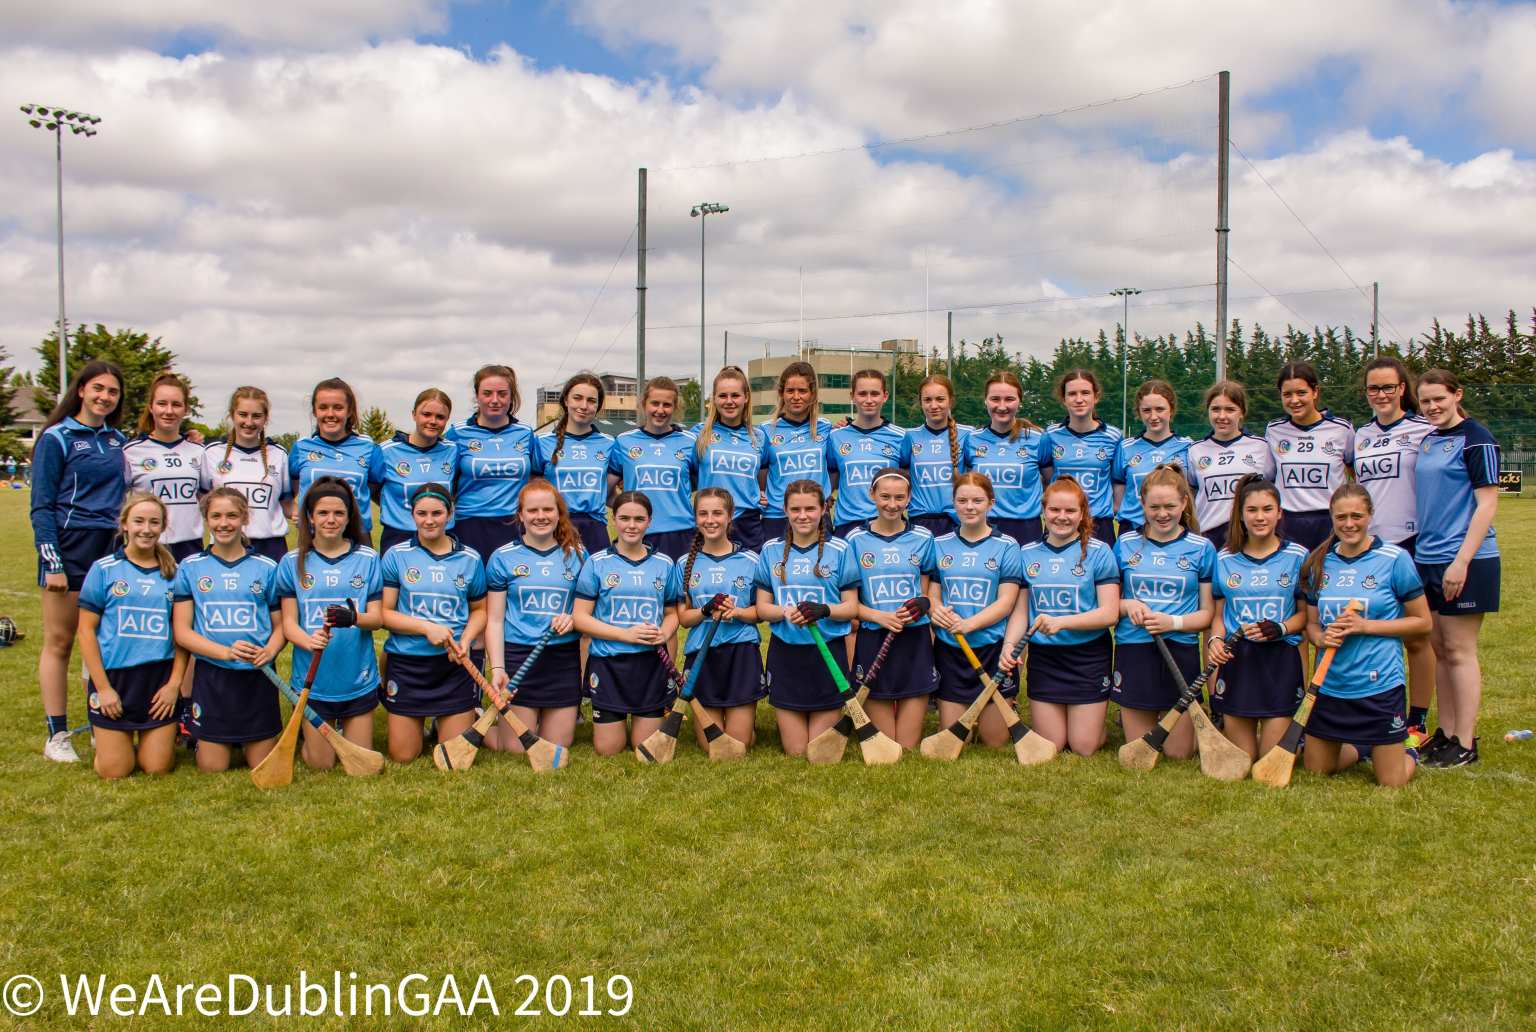 U16A Dublin Camogie Squad pictured before a game.